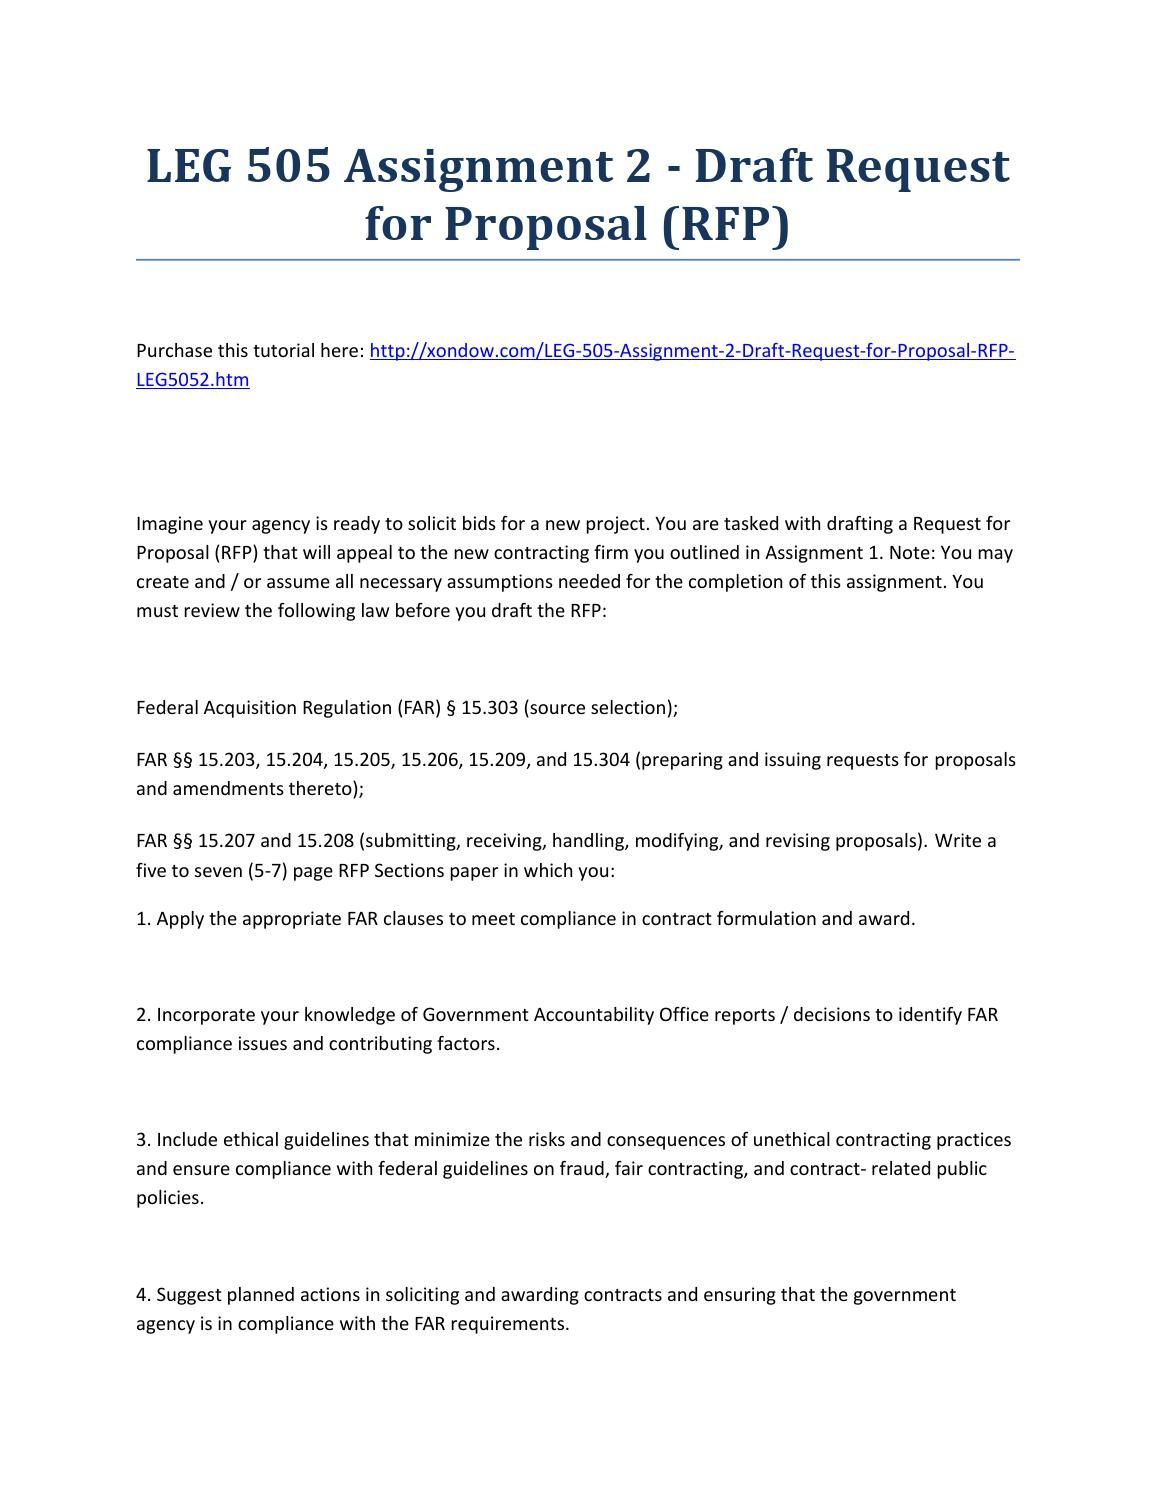 Leg 505 Assignment 2 Draft Request For Proposal Rfp Strayer University New